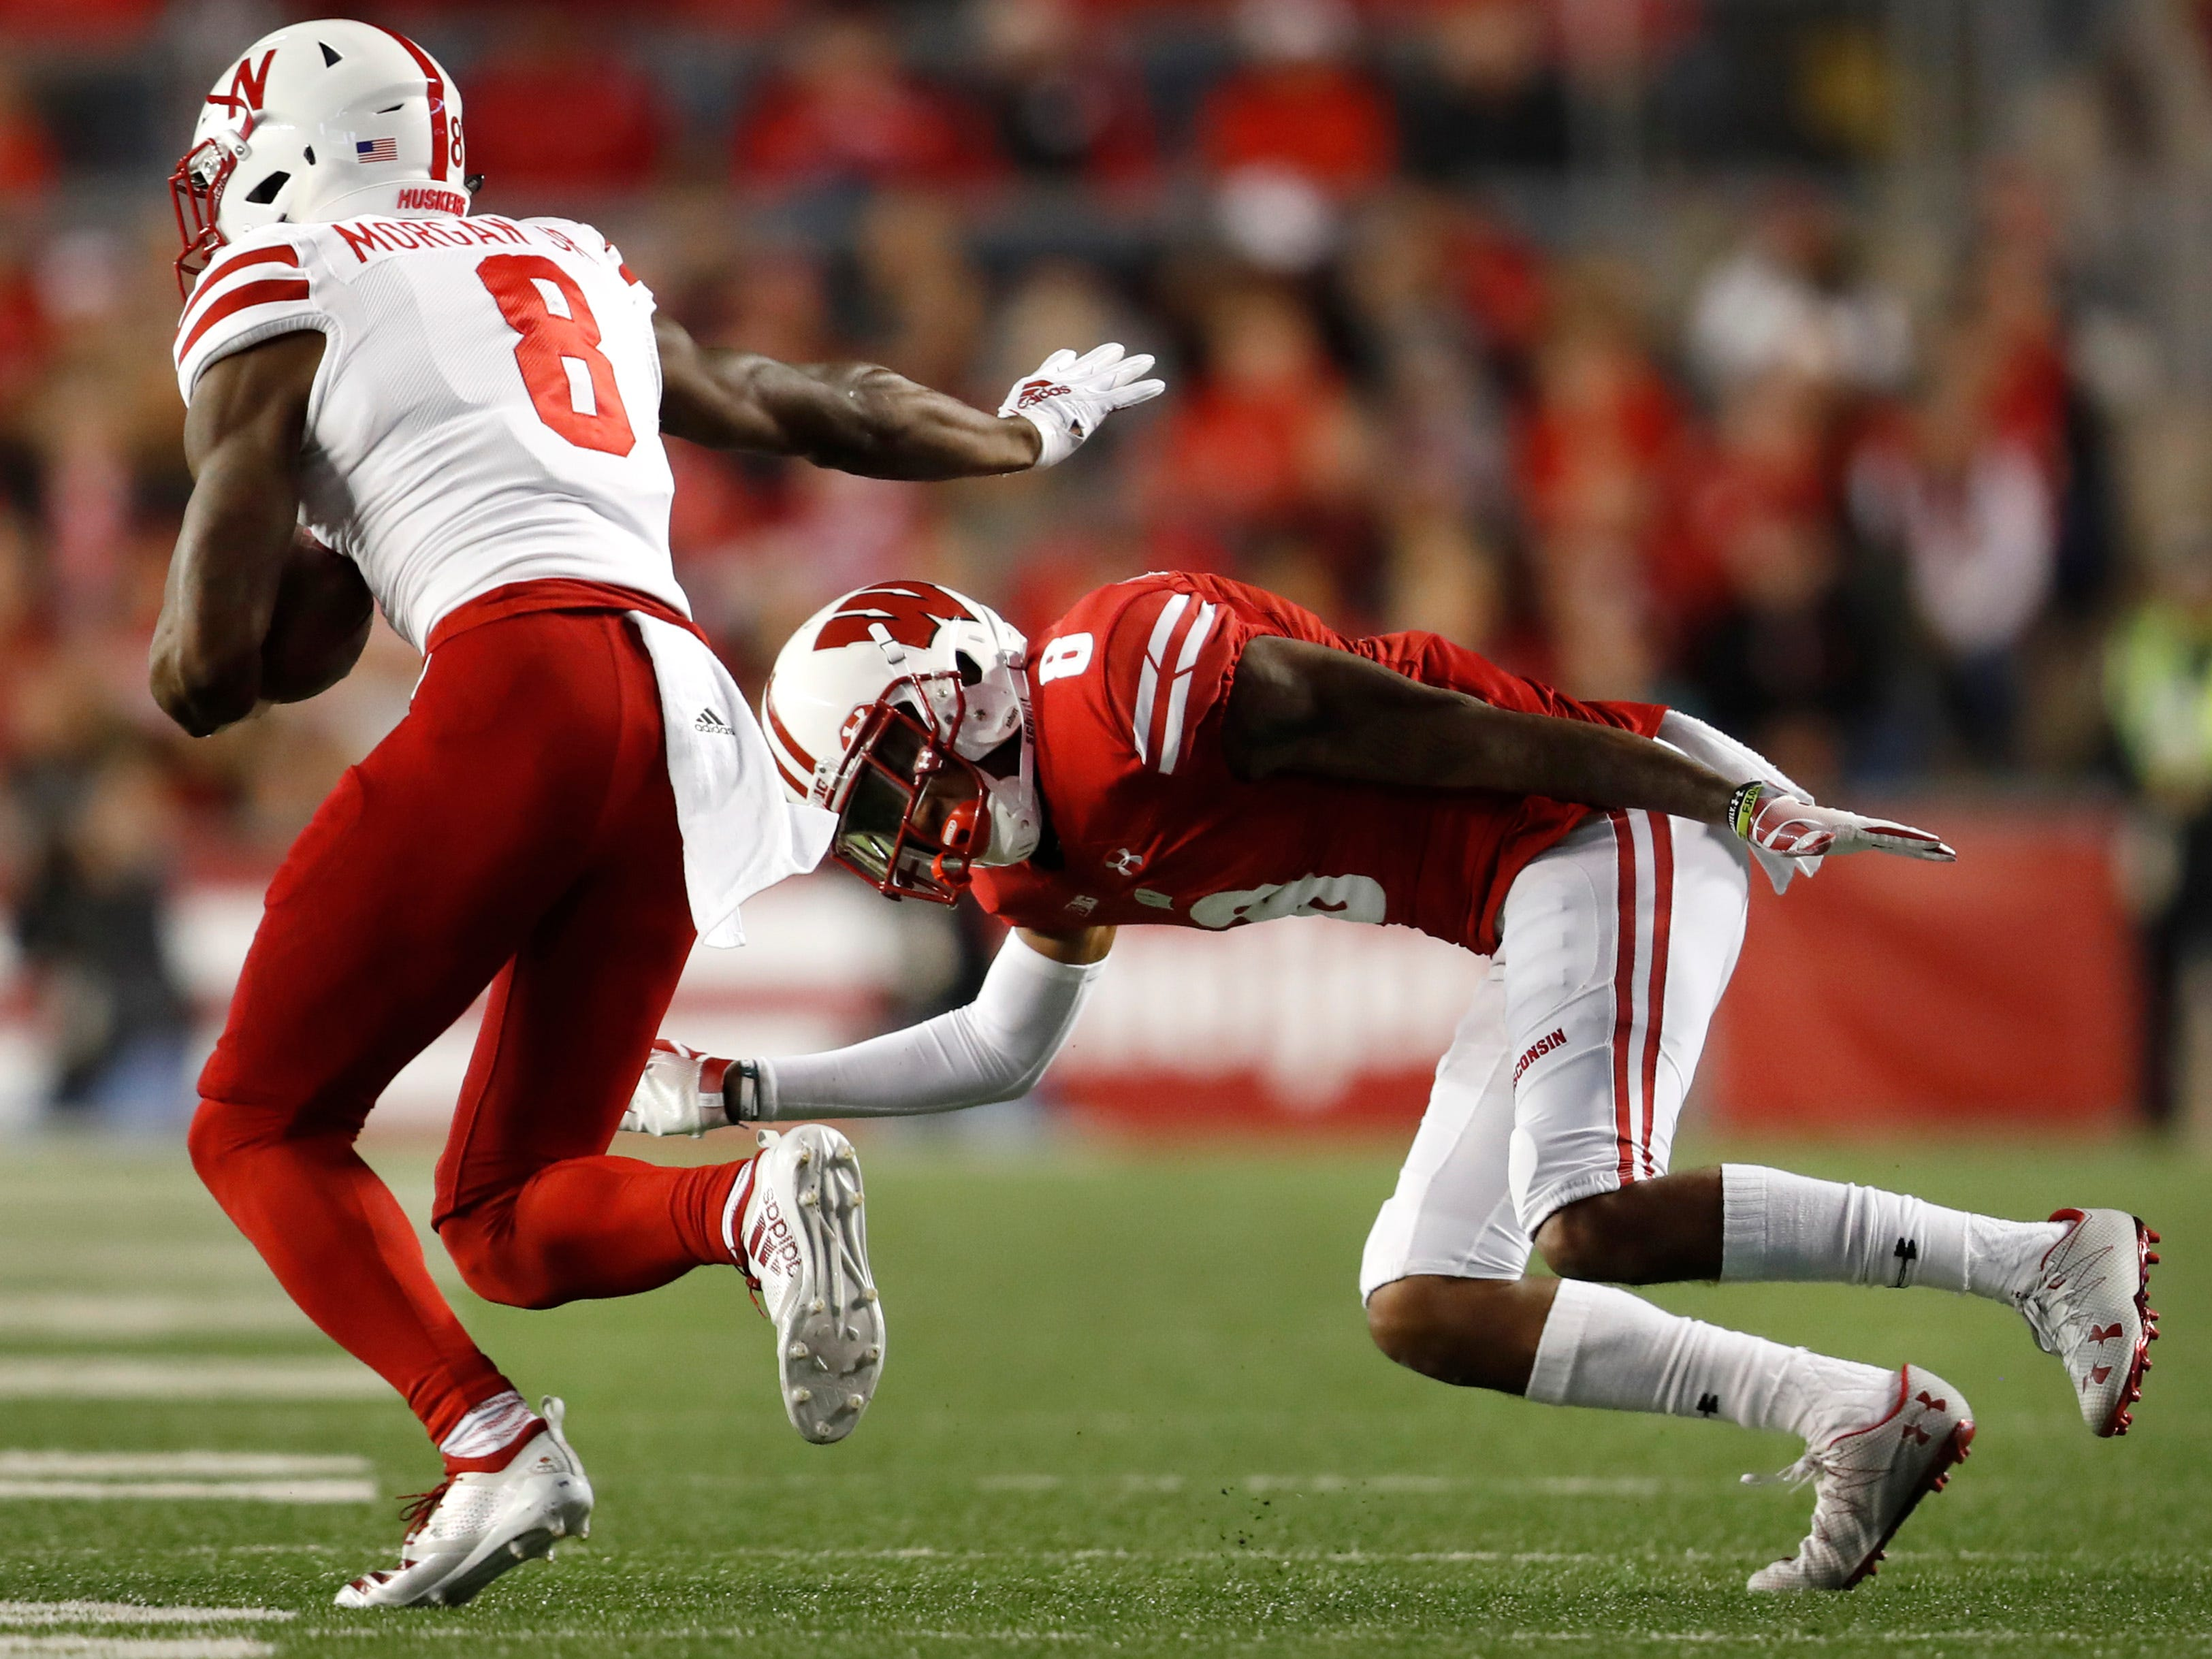 Nebraska wide receiver Stanley Morgan Jr. tries to work his way around Wisconsin cornerback Deron Harrell on Saturday night.